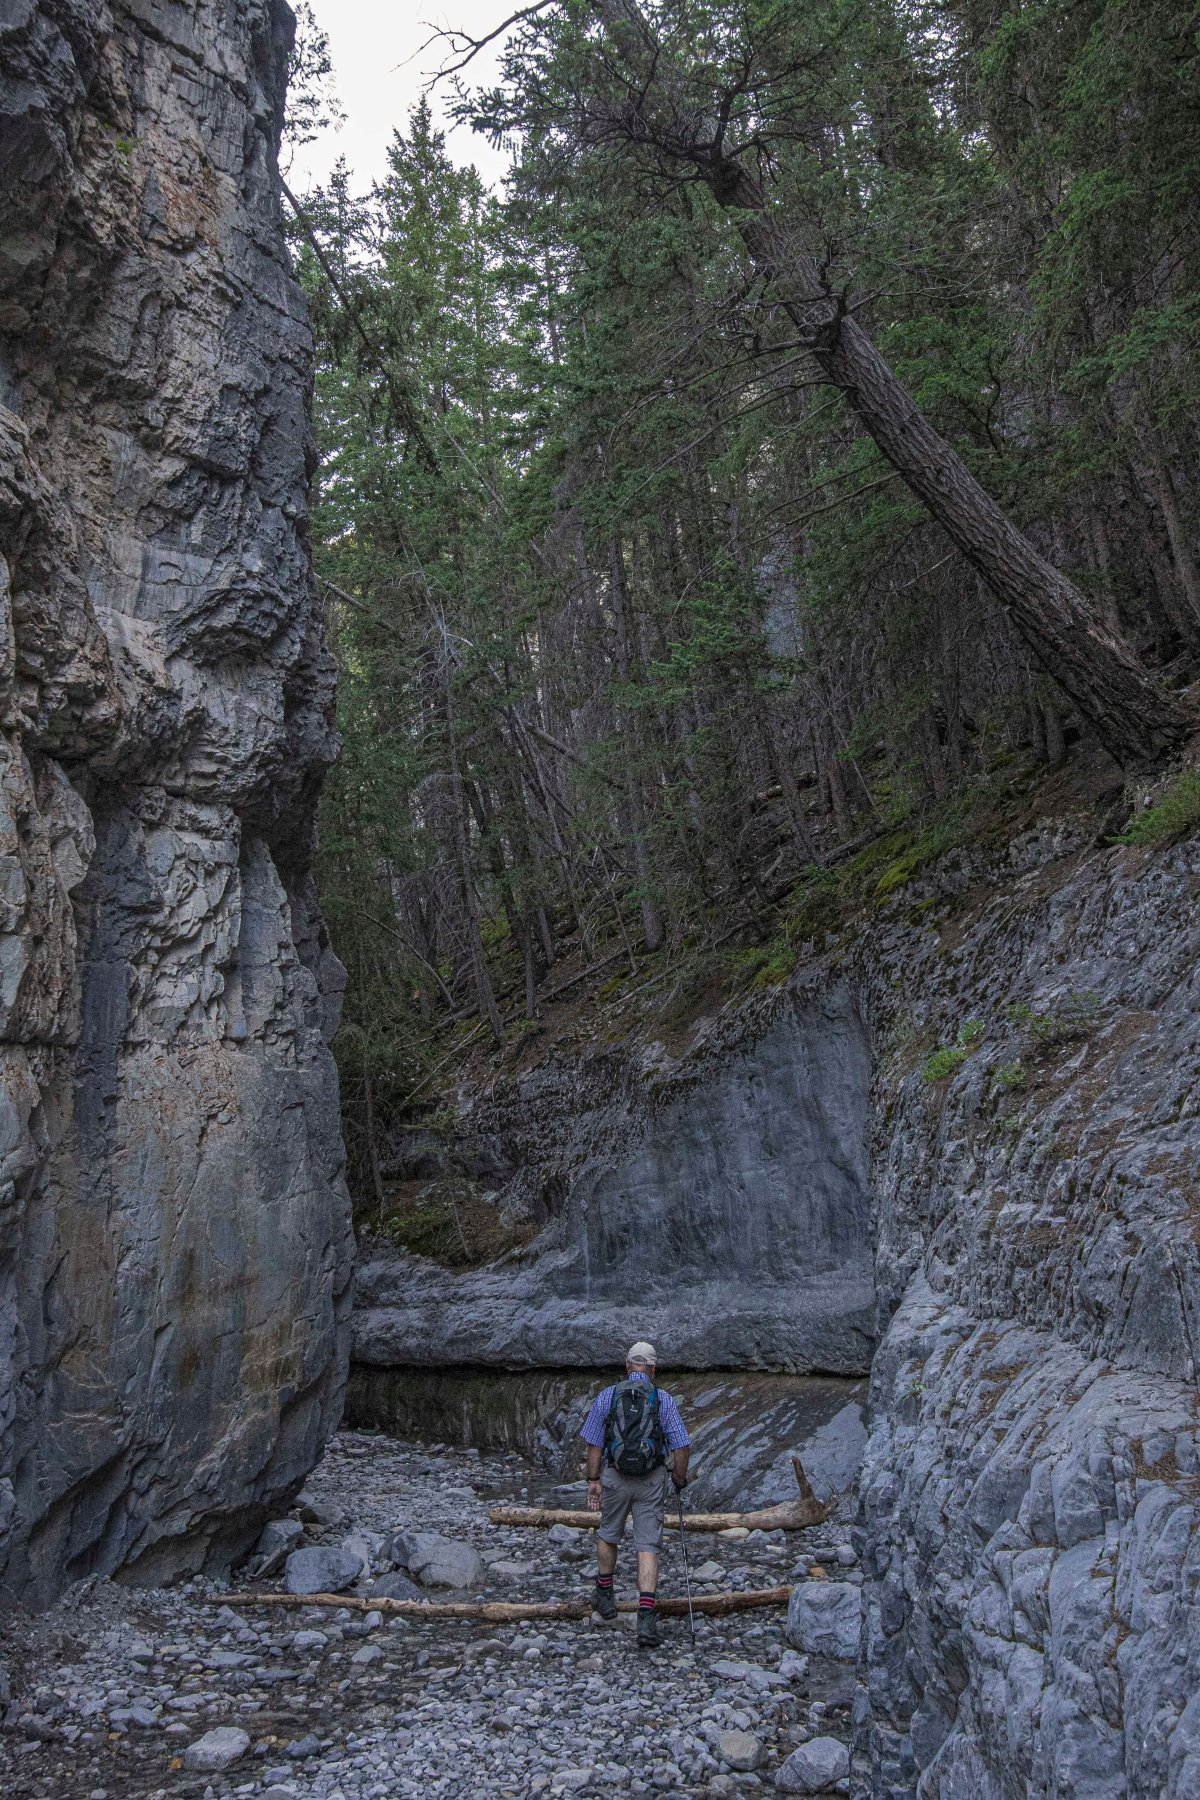 2019-07-28 Grotto Canyon Hike 3